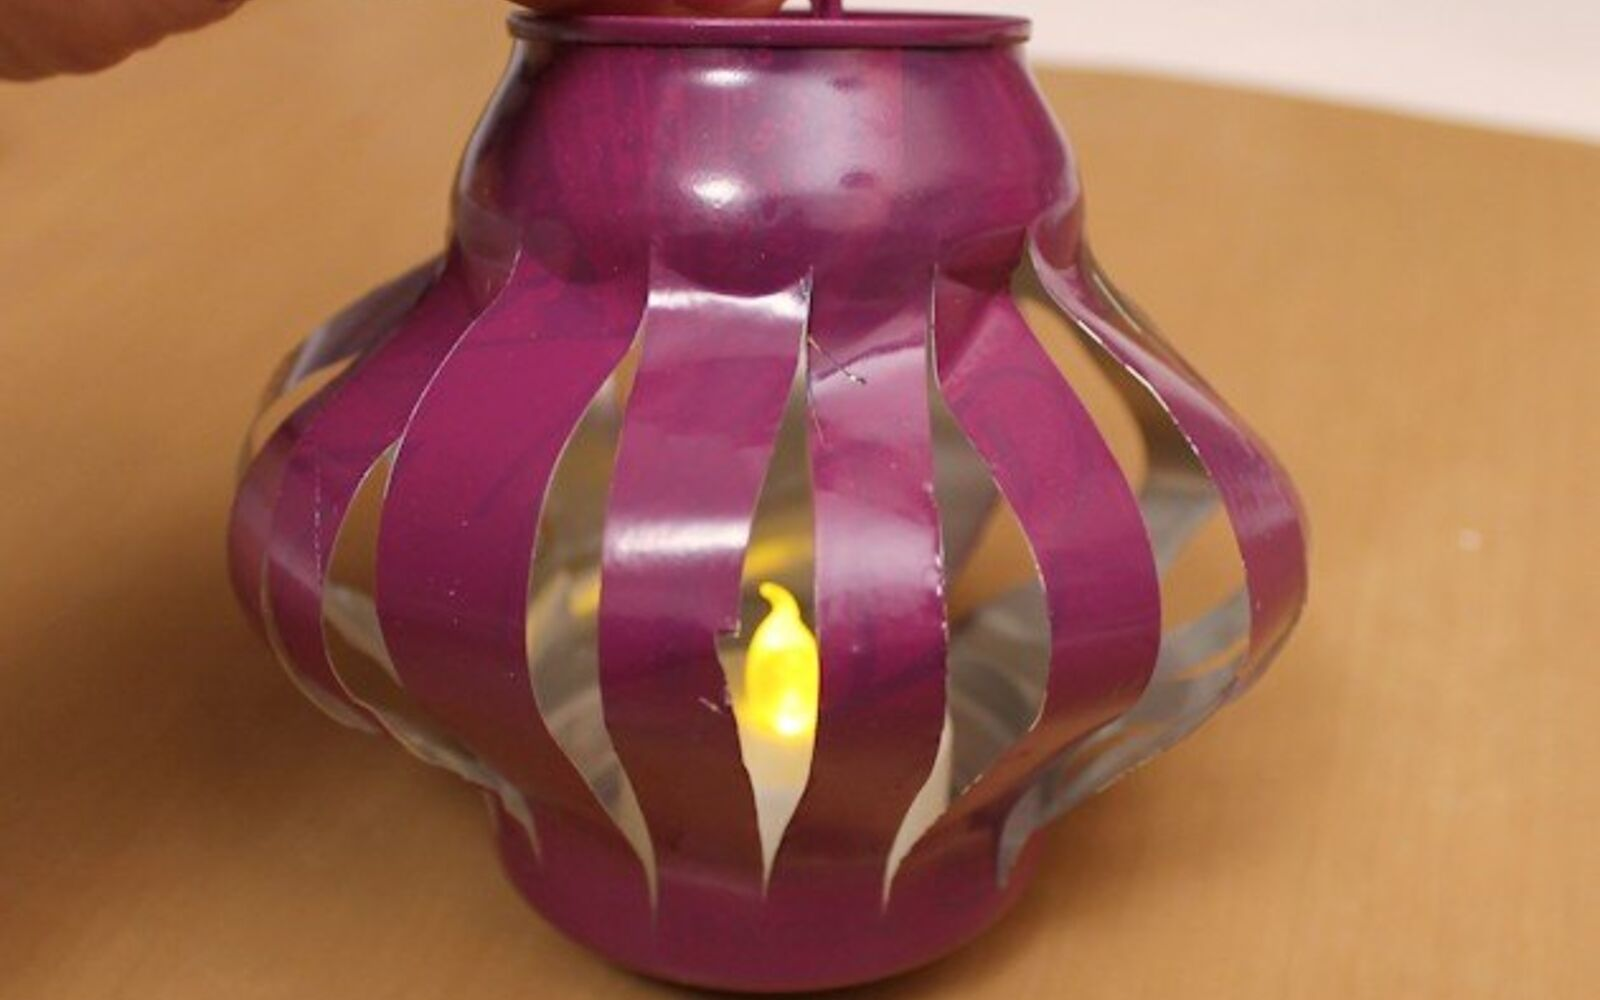 s save your old cans for these 30 home decor ideas, Turn them into glowing Chinese lanterns